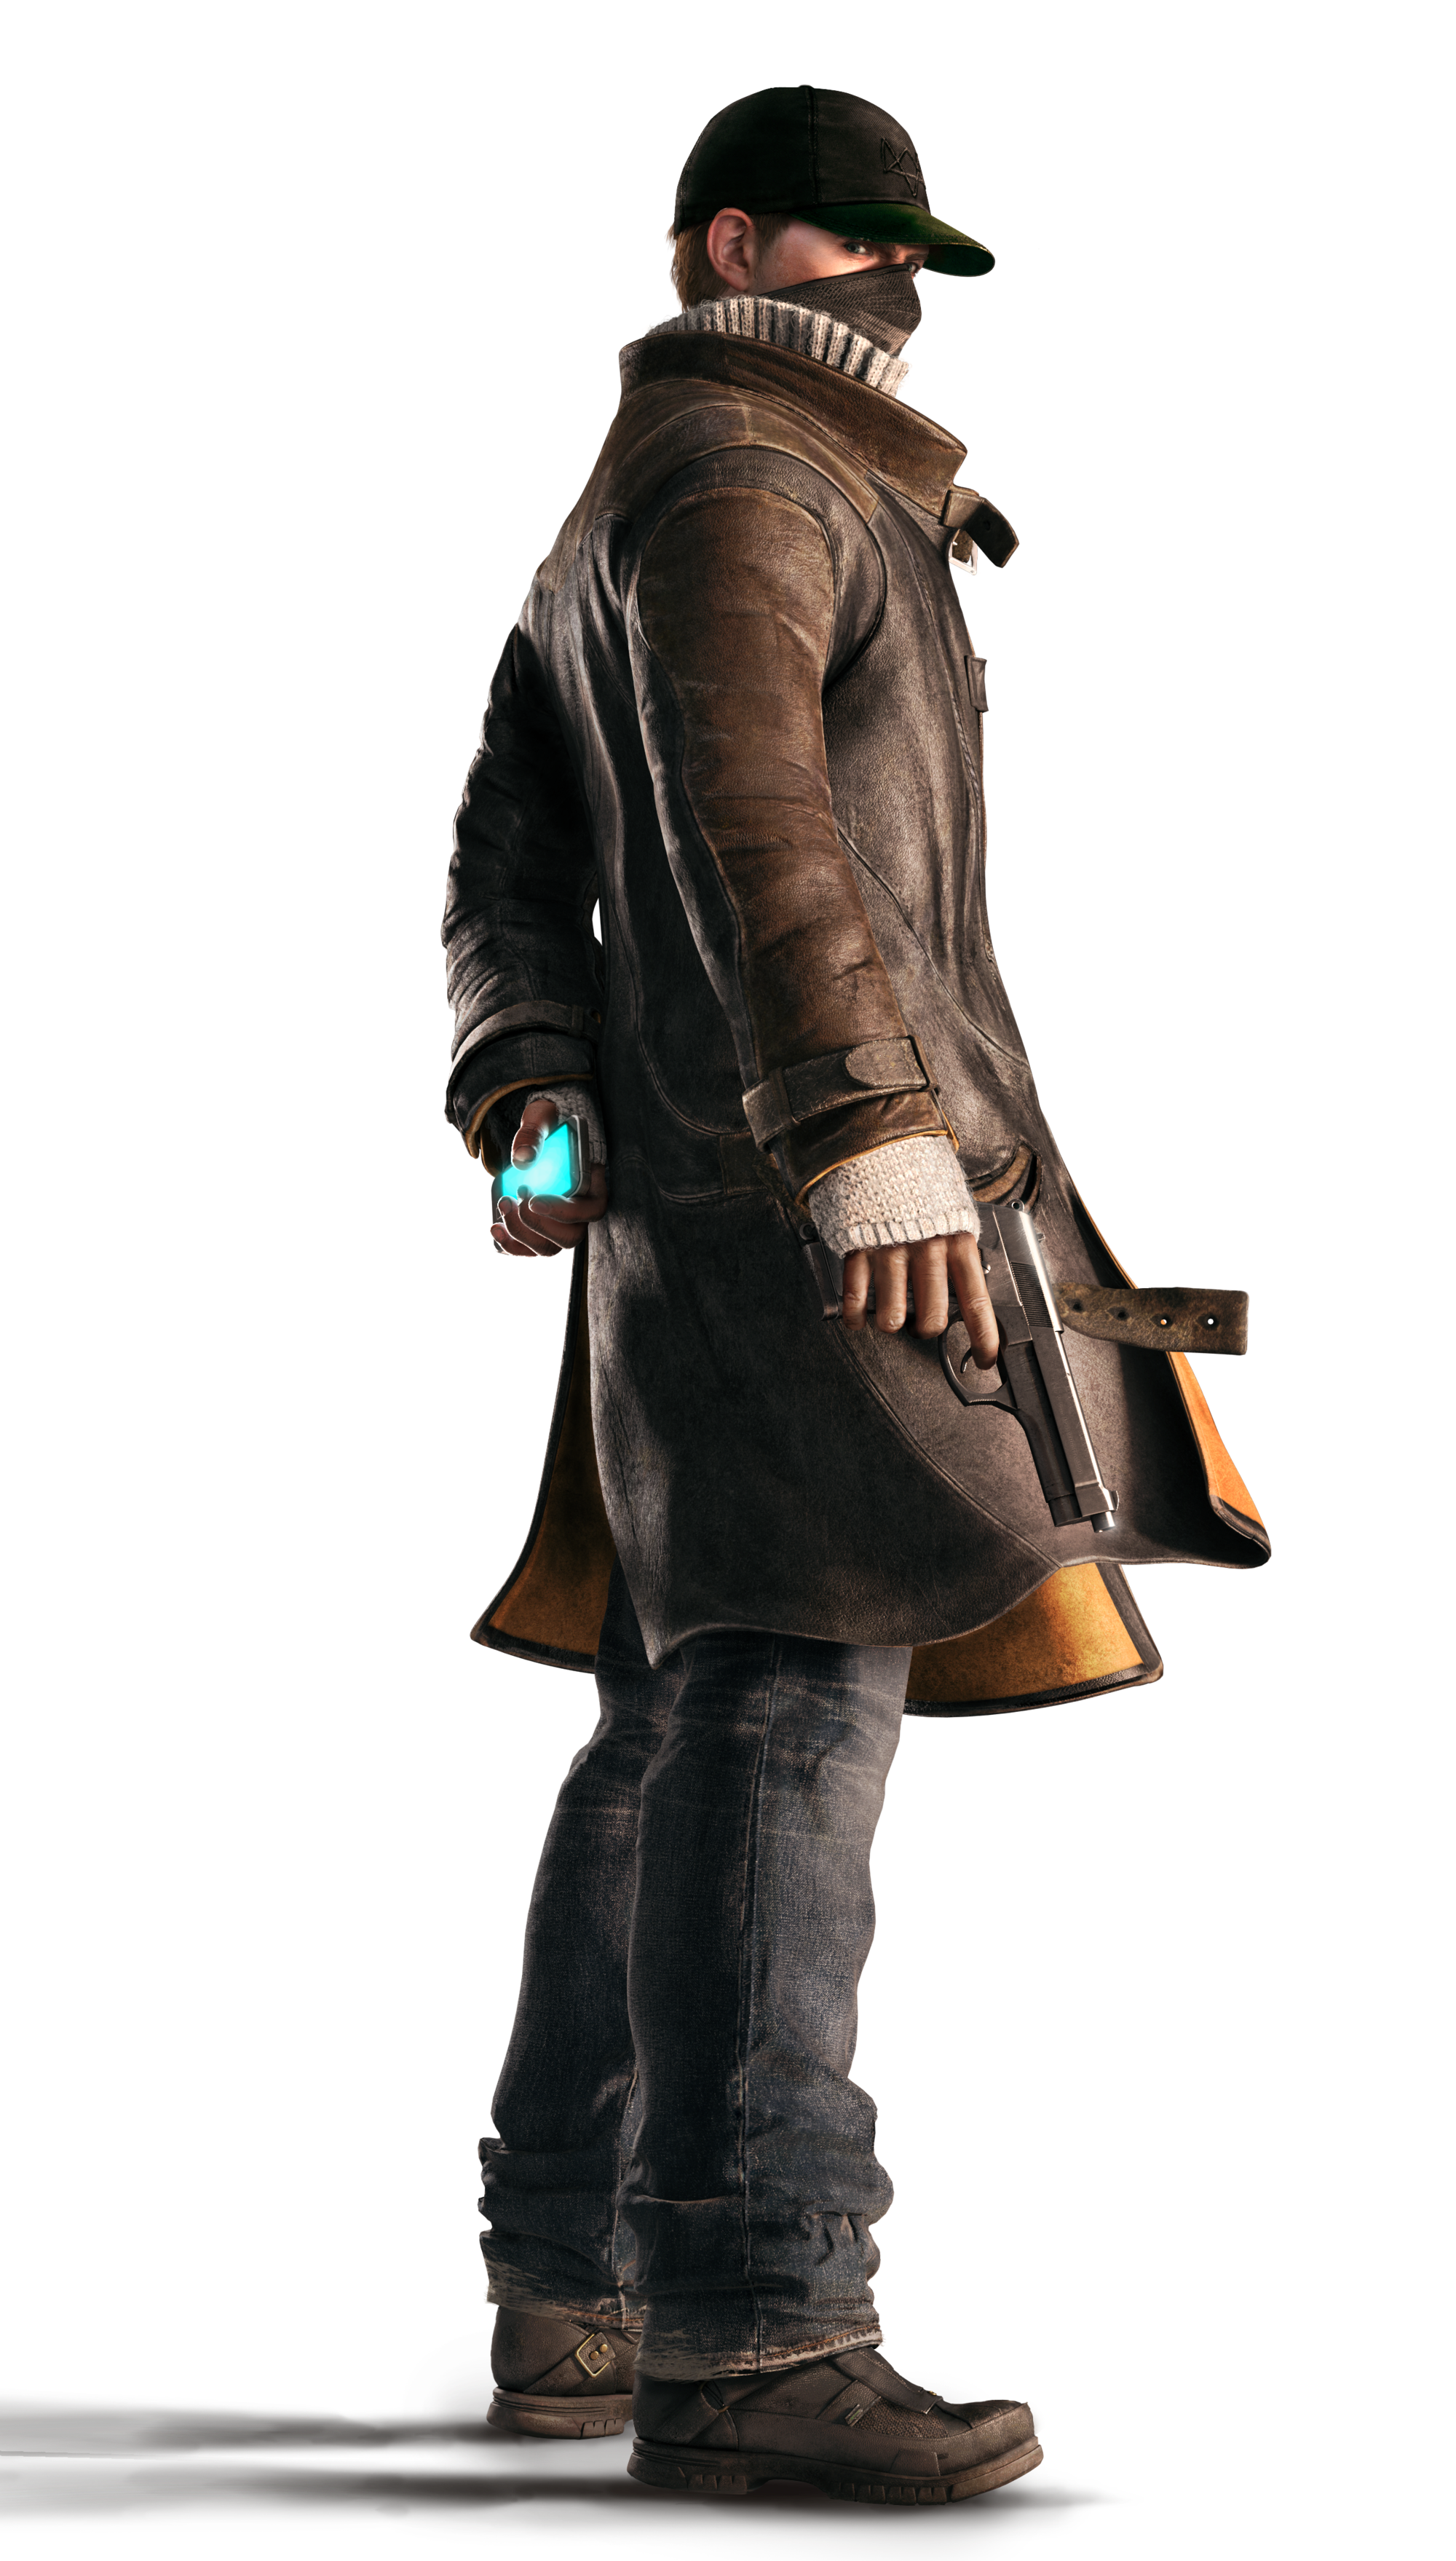 Aiden pearce watch dogs. Watch_dogs png art graphic freeuse library